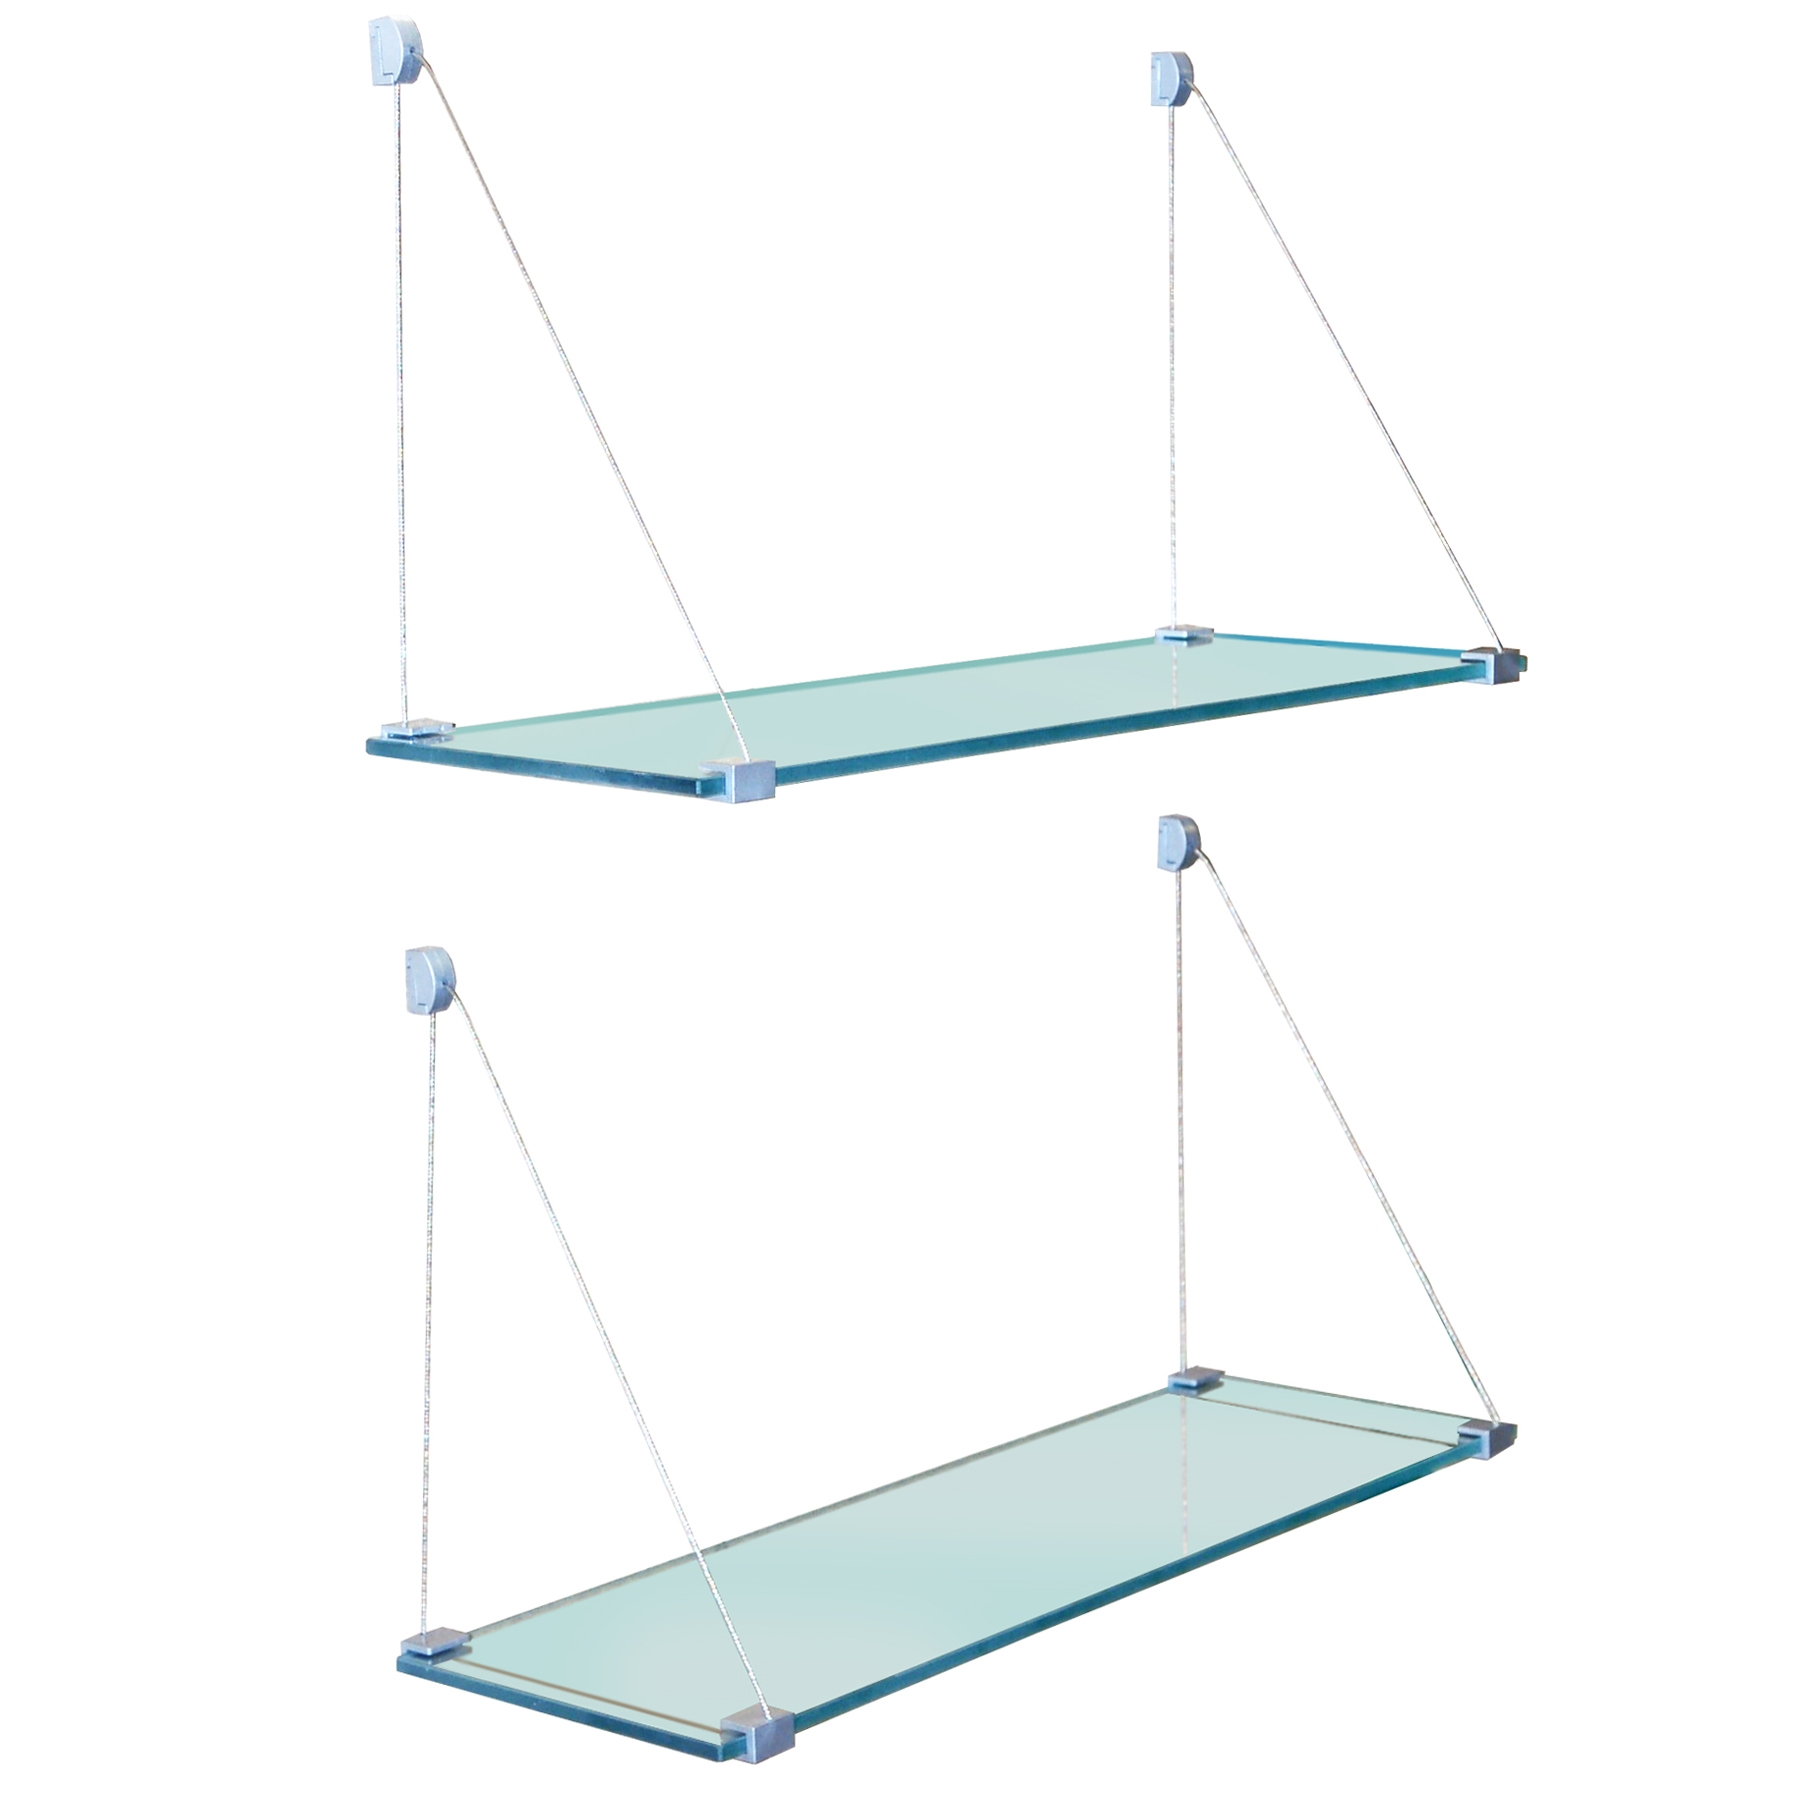 How Glass Shelves For Bathroom Home Decorations Throughout Wire Suspended Glass Shelves (View 2 of 12)